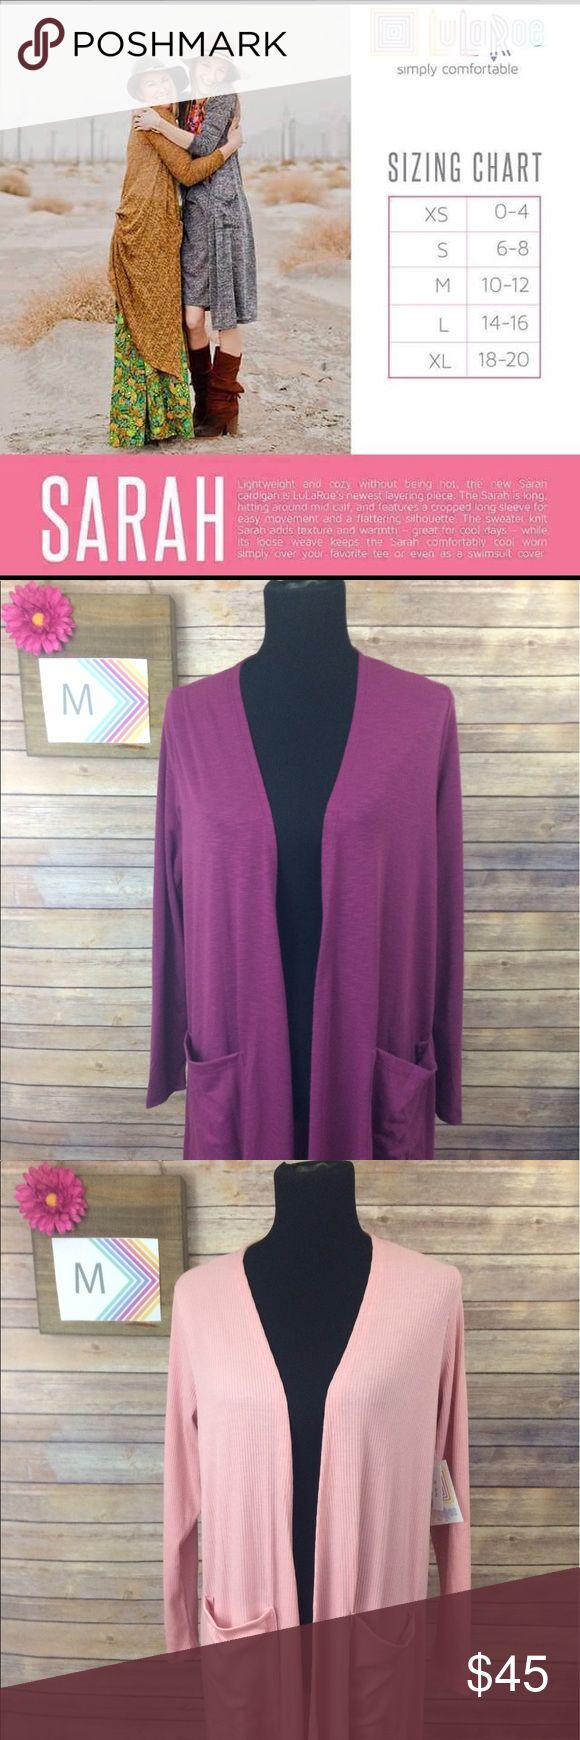 LuLaRoe Sarah Dusters All are brand new with tags! LuLaRoe Sweaters Cardigans